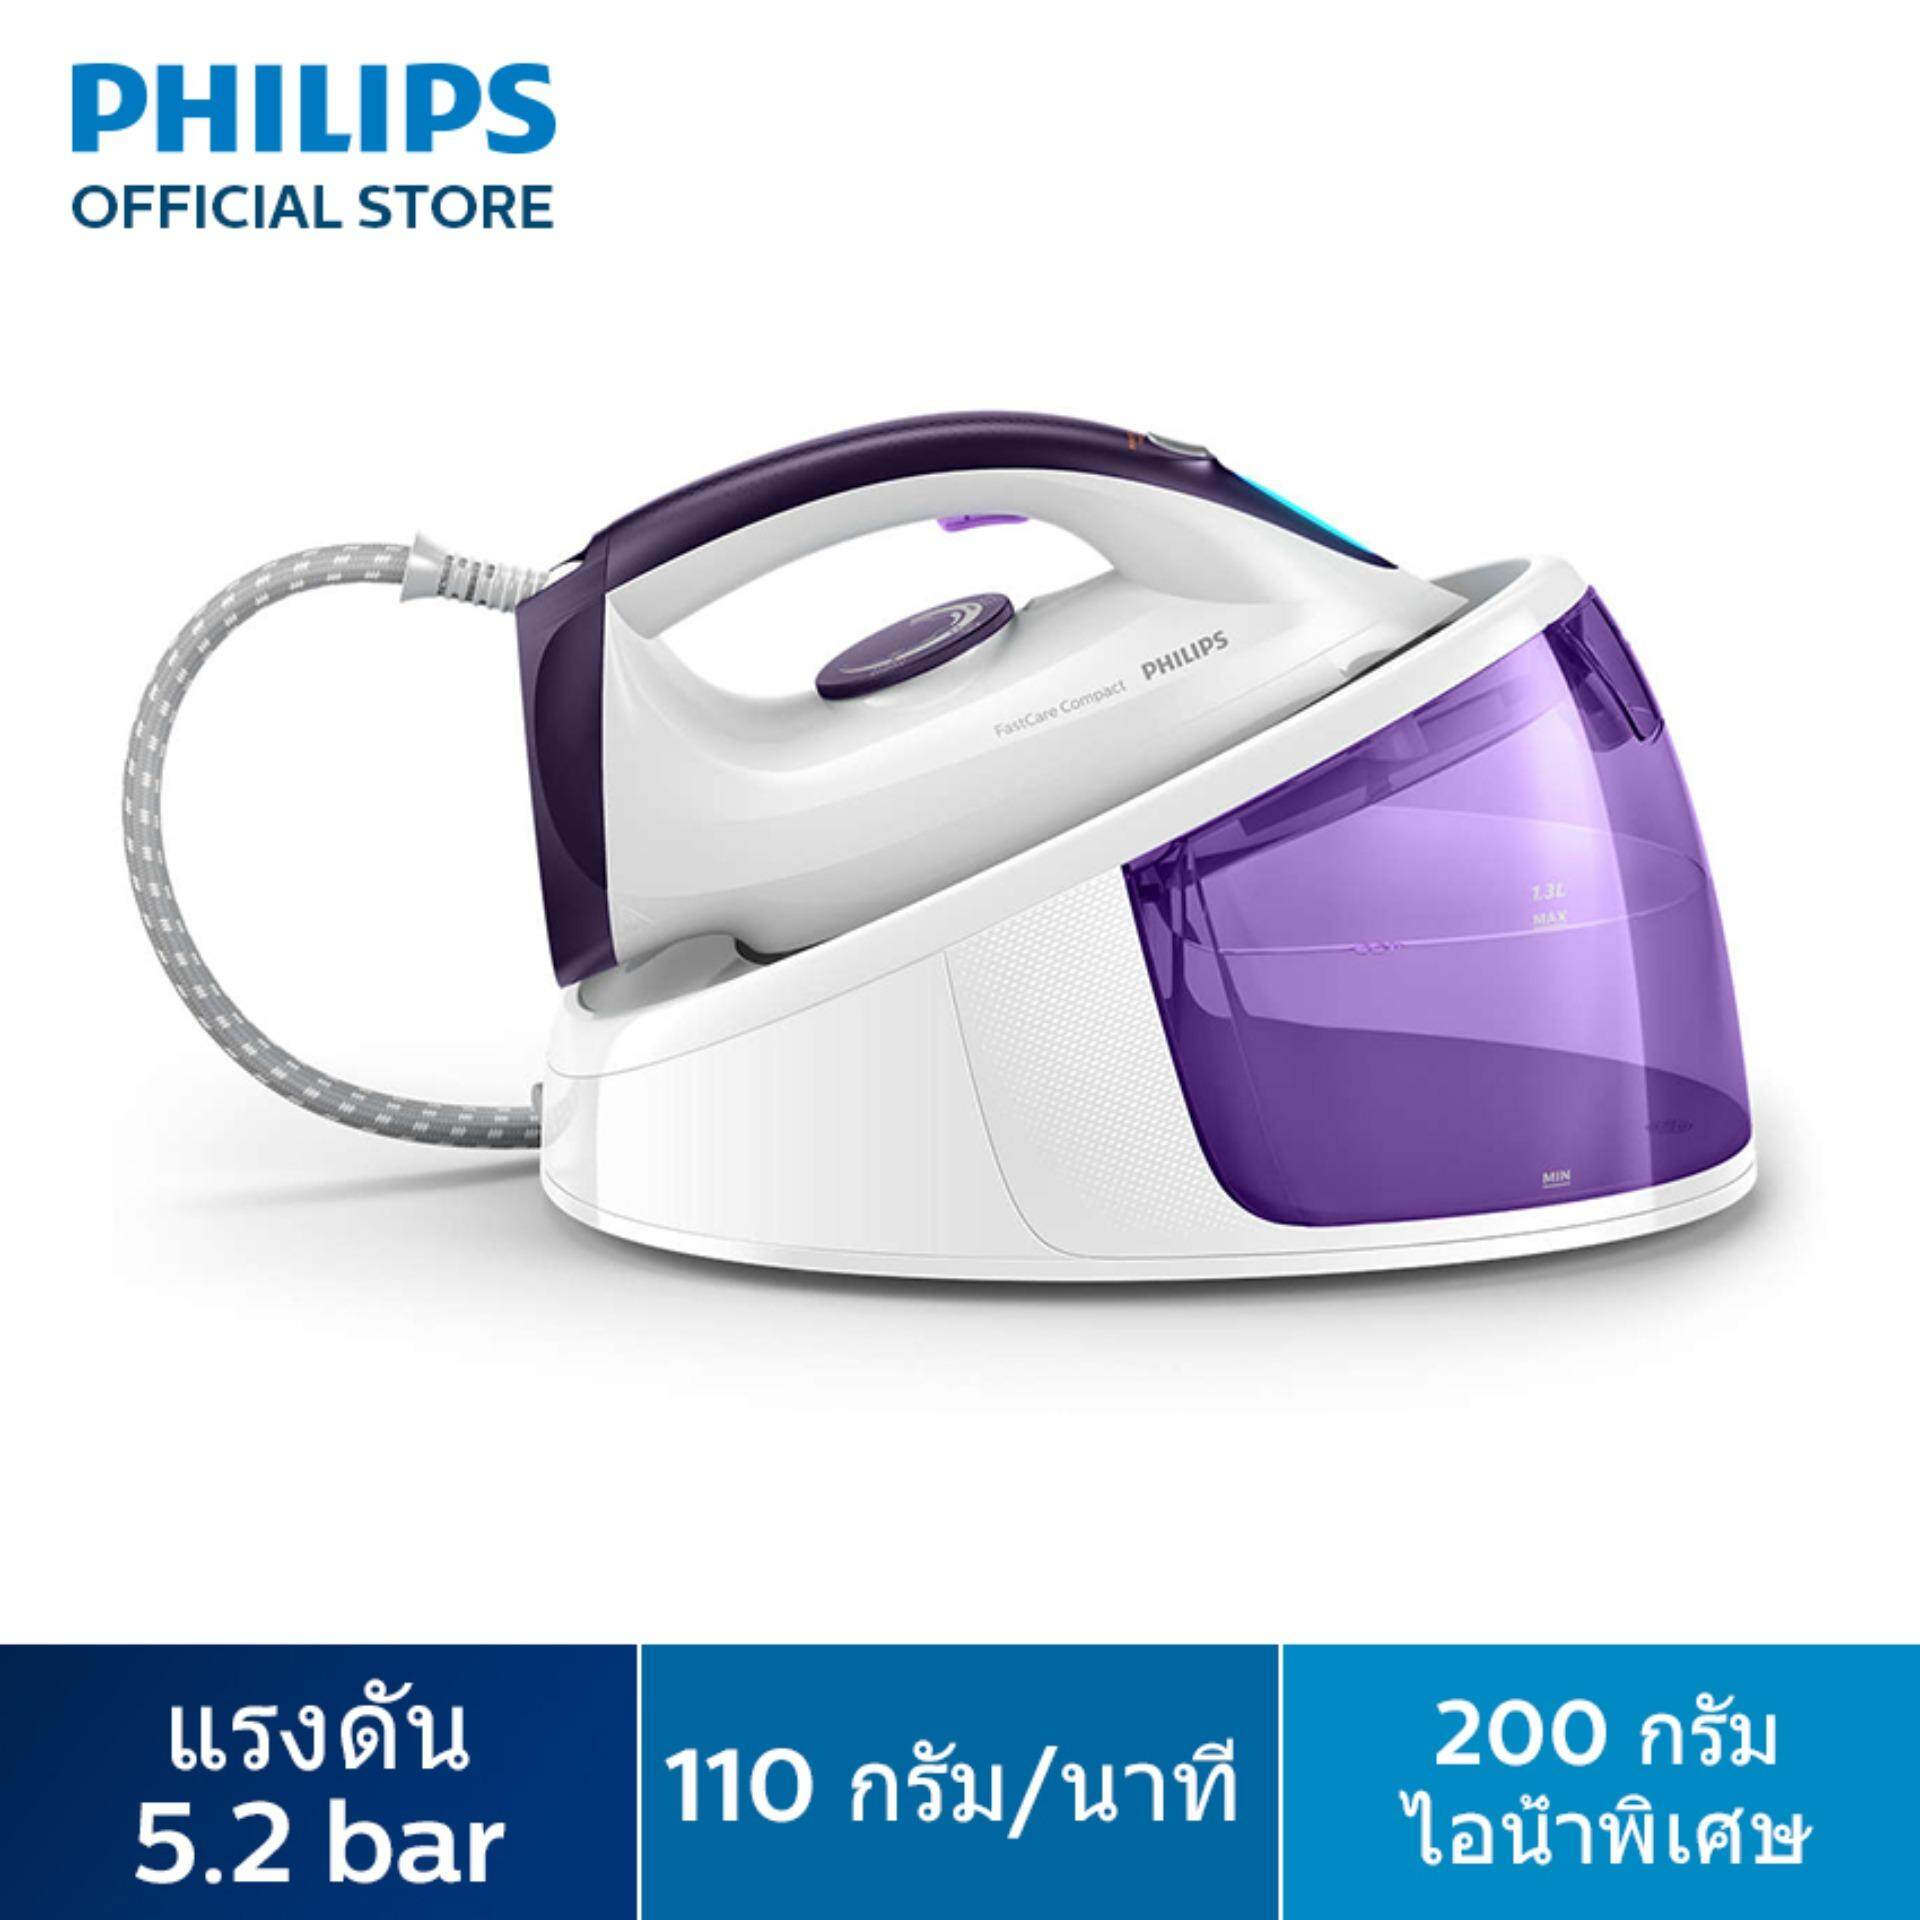 Philips FastCare Compact Steam Generator GC6704/30 เตารีดแรงดันไอน้ำ Free Shipping